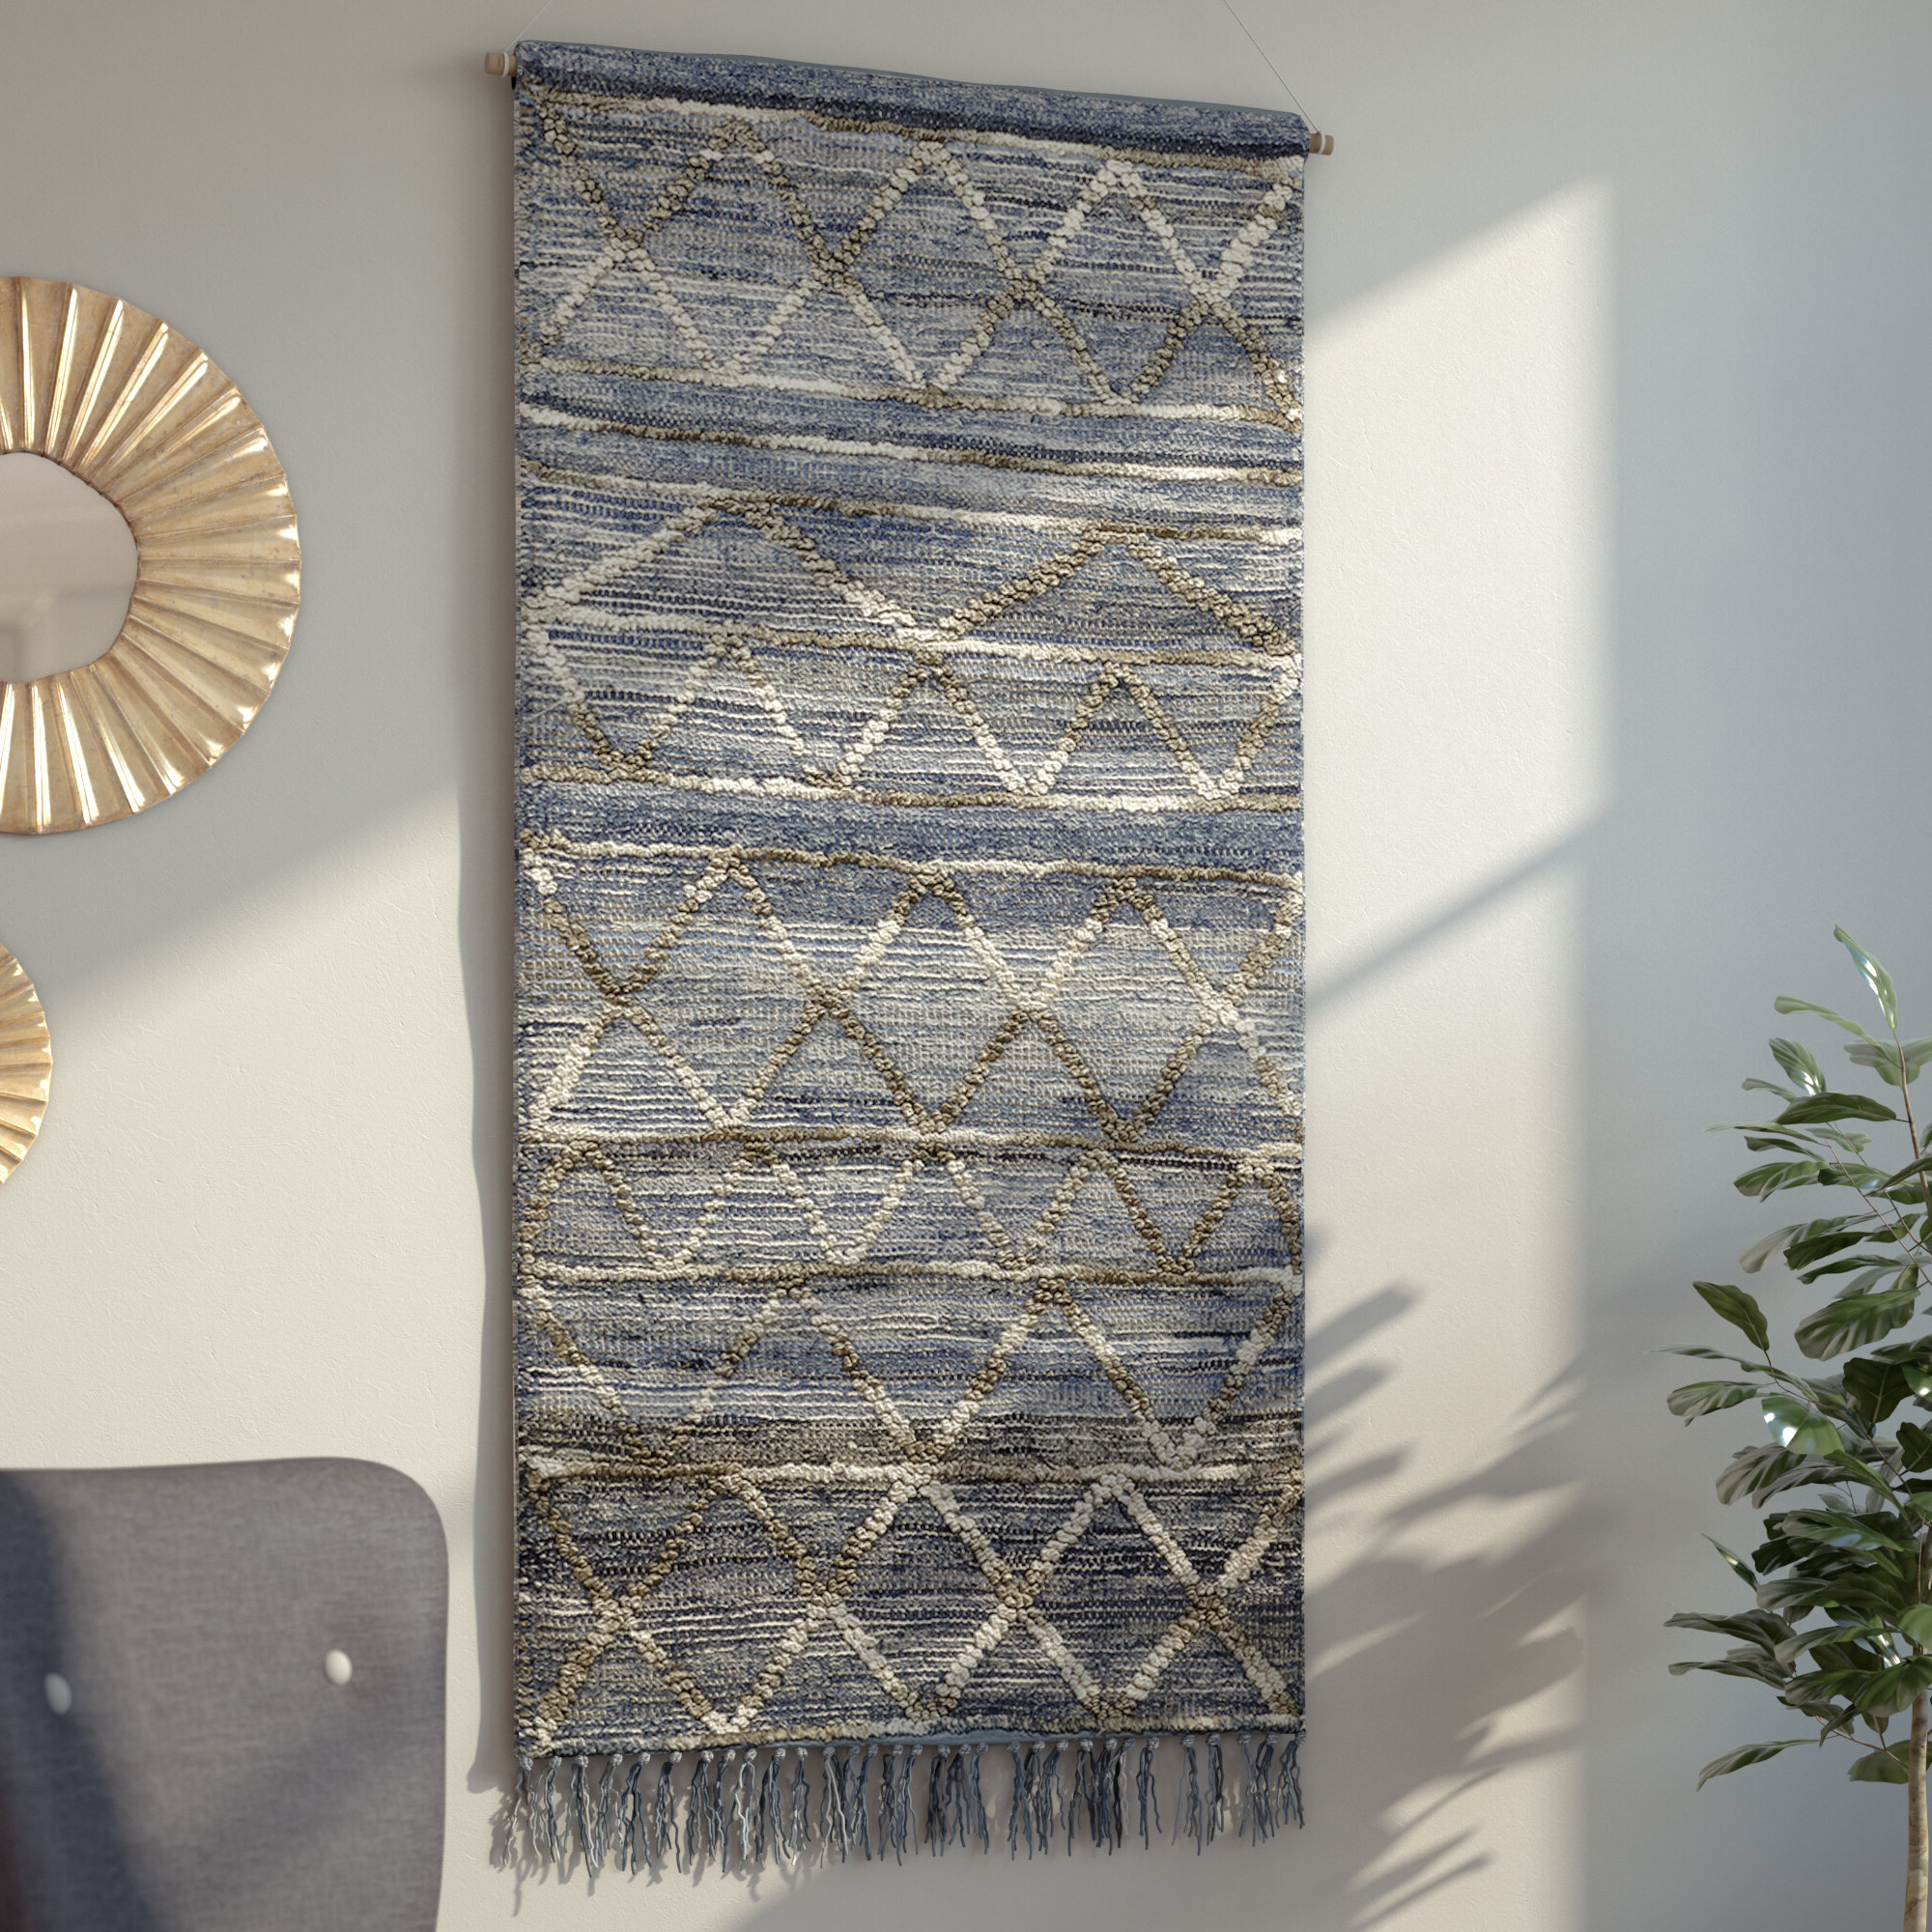 Blended Fabric Wall Hanging With Hanging Accessories Pertaining To Newest Blended Fabric Wall Hangings (View 2 of 20)